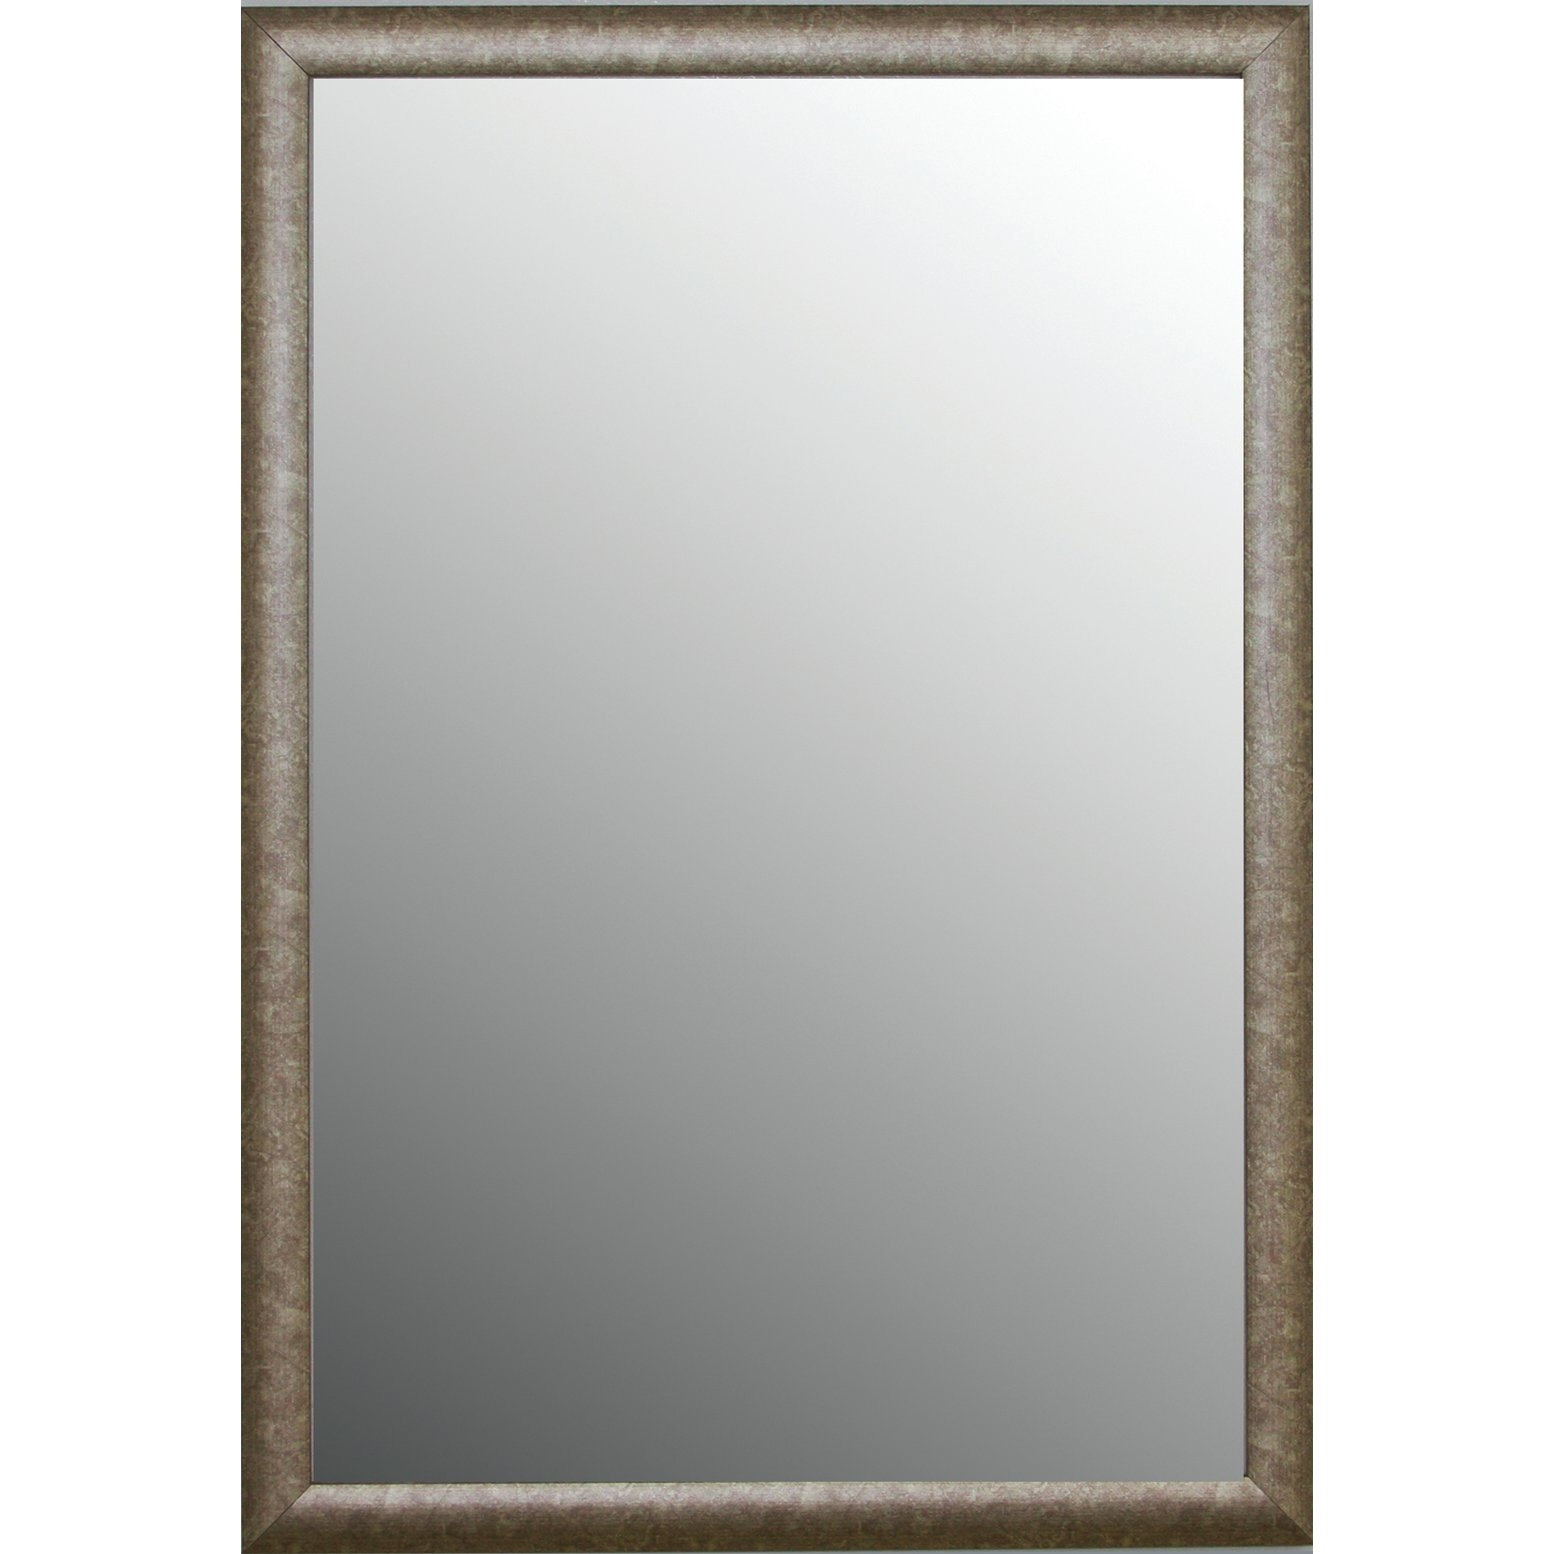 Second Look Mirrors Vintage Champagne Gold With Silver Highlights With Regard To Champagne Silver Mirror (View 4 of 15)